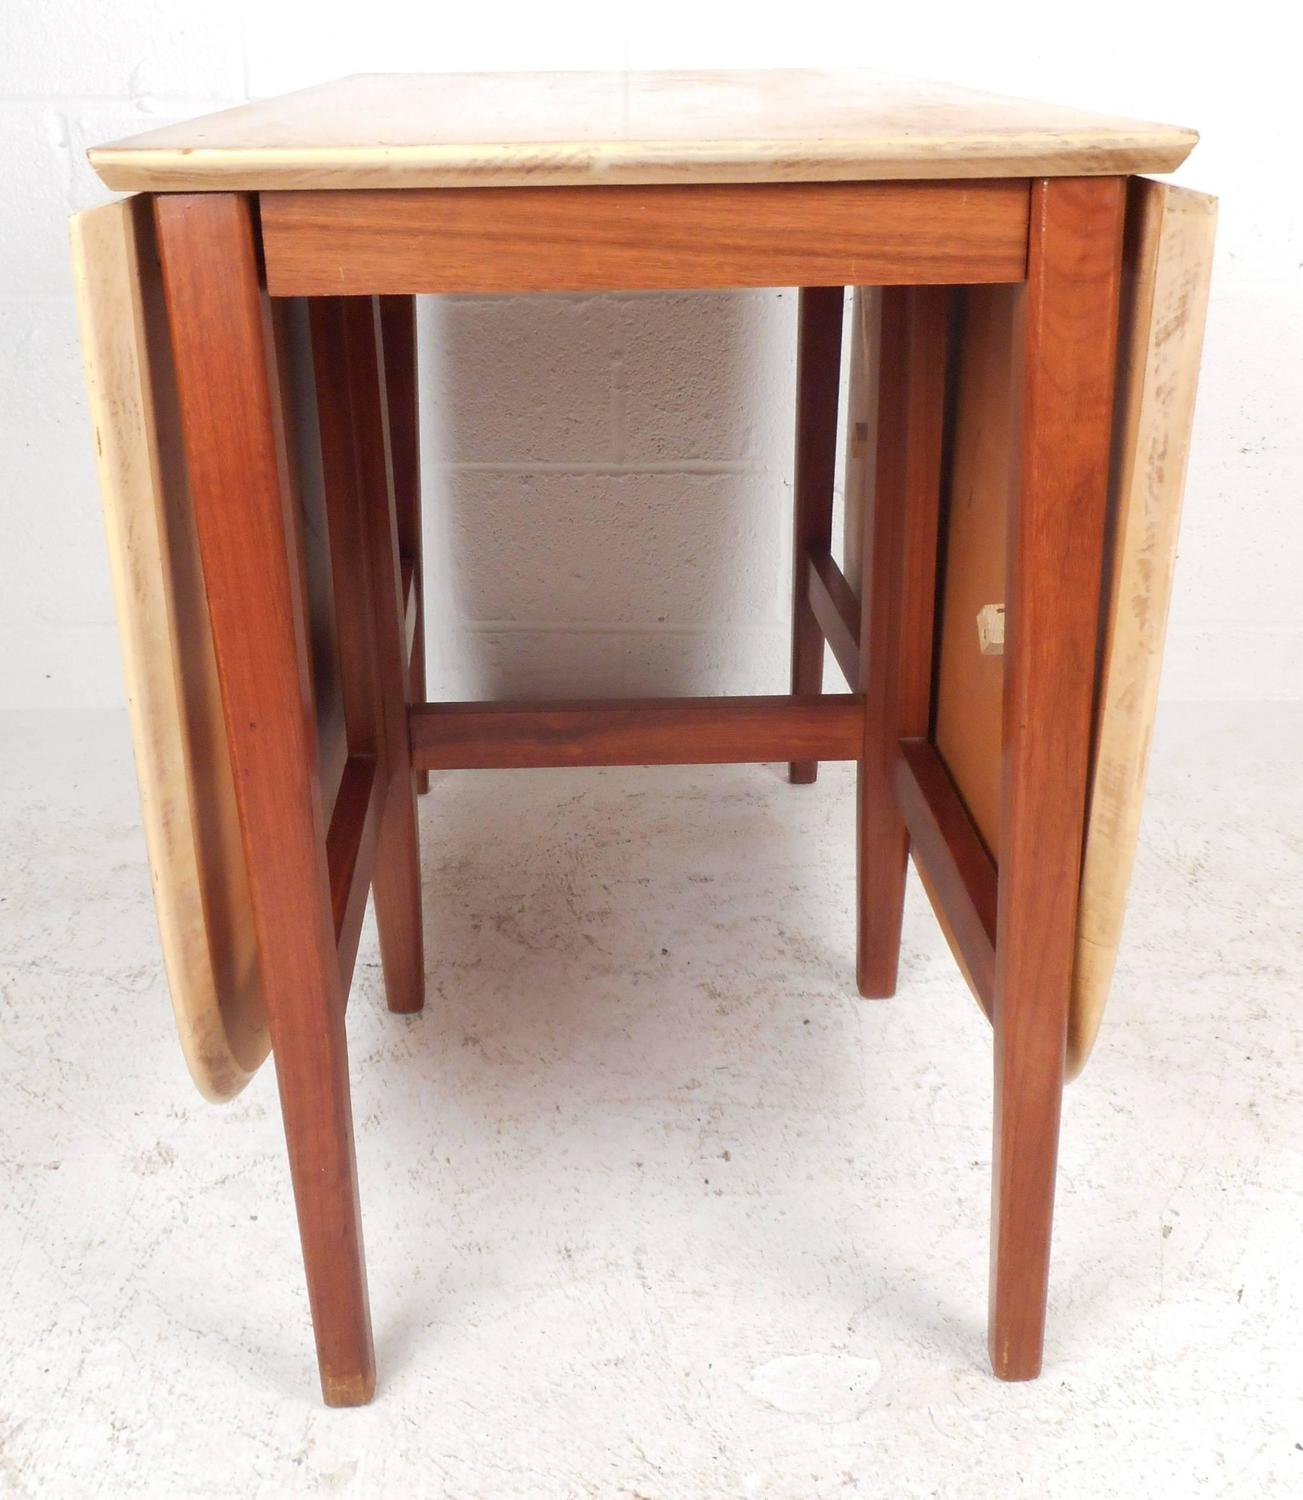 MidCentury Modern Gate Leg Dining Table For Sale at 1stdibs